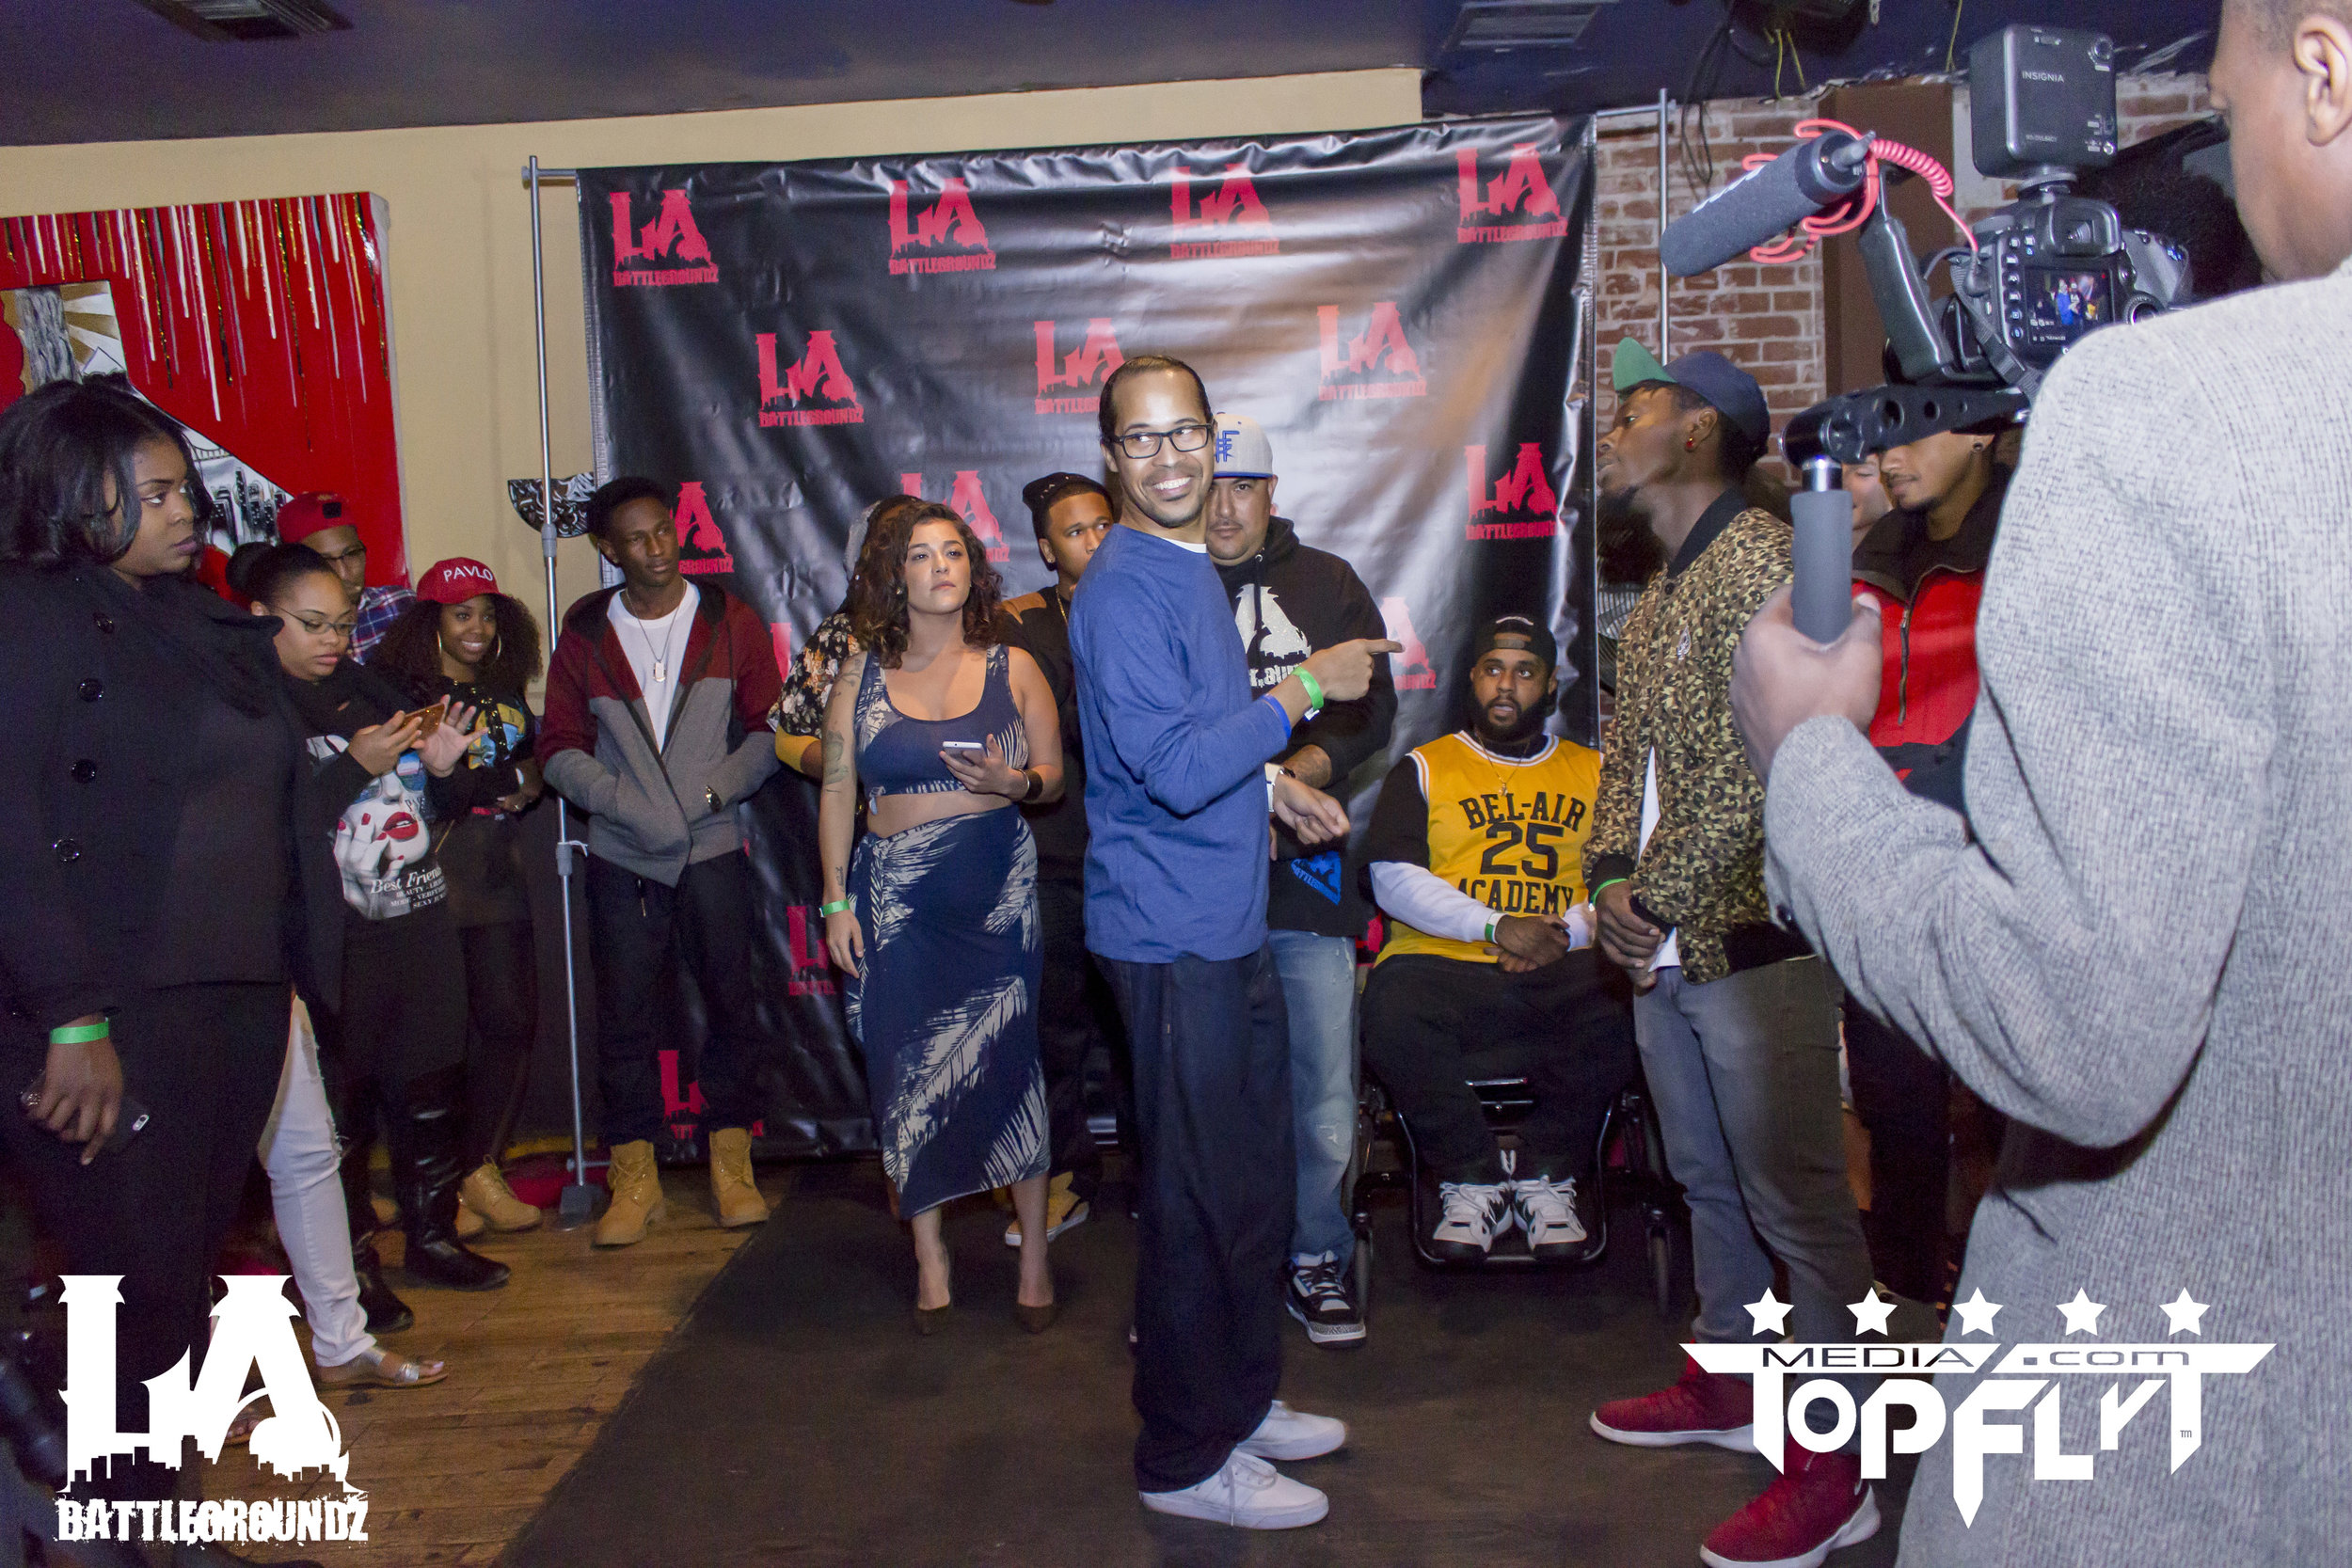 LA Battlegroundz - Decembarfest - The Christening_13.jpg